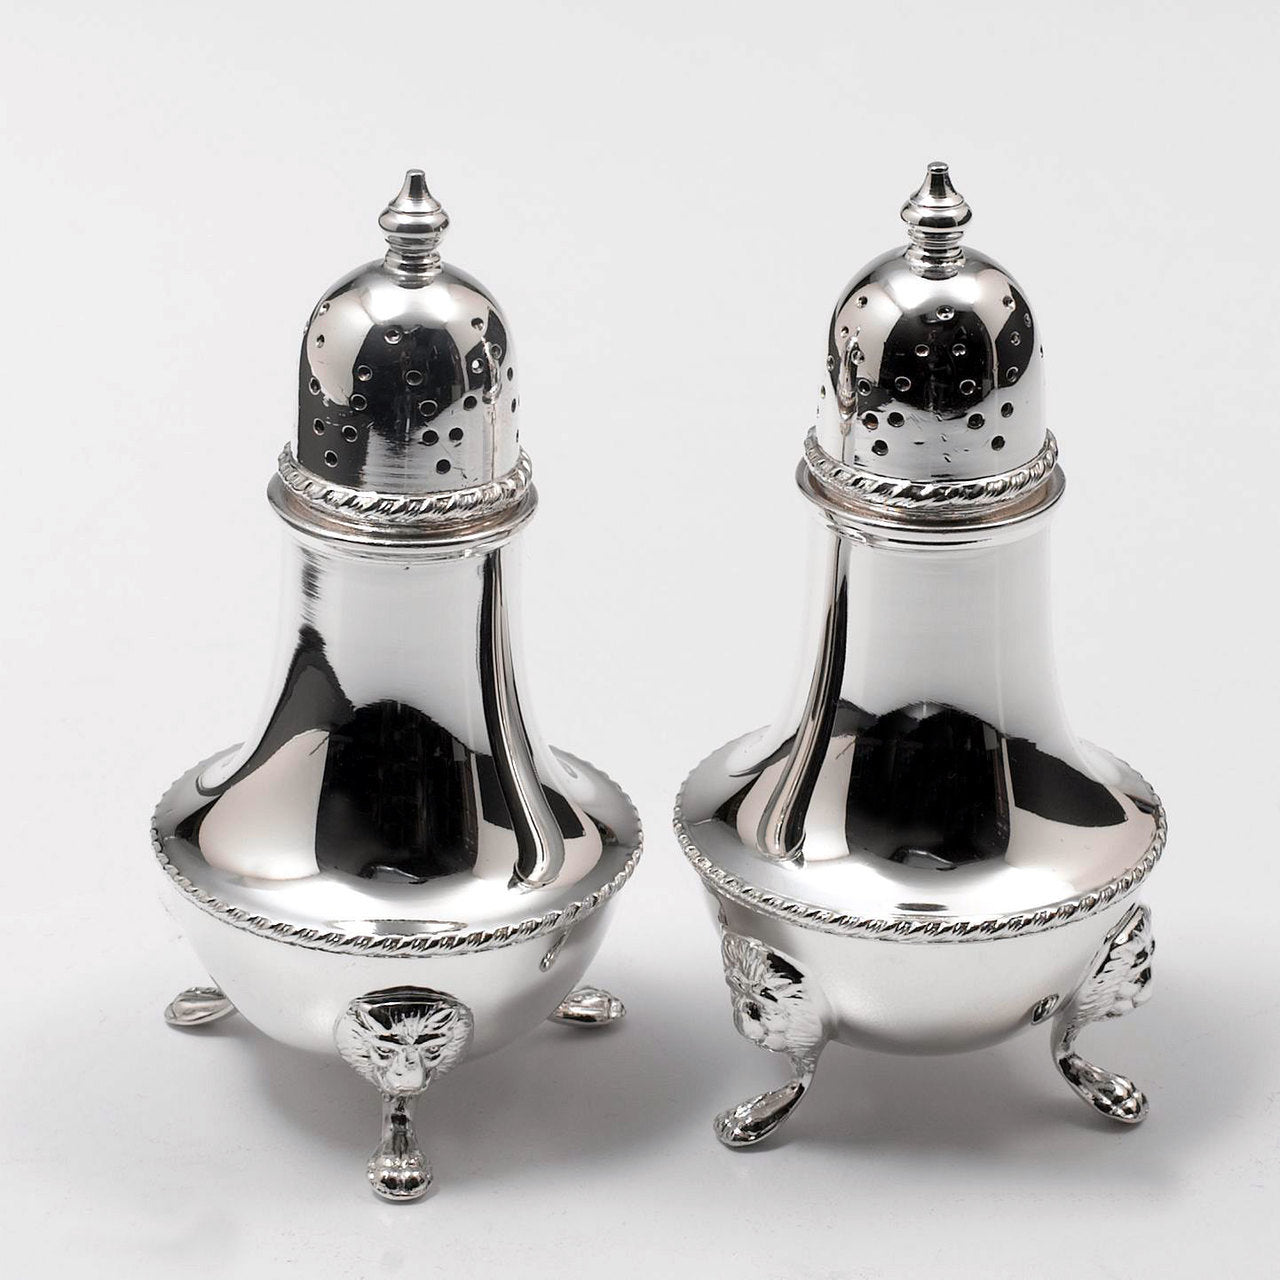 New And Vintage Sterling Silver Salt And Pepper Shakers Trusted